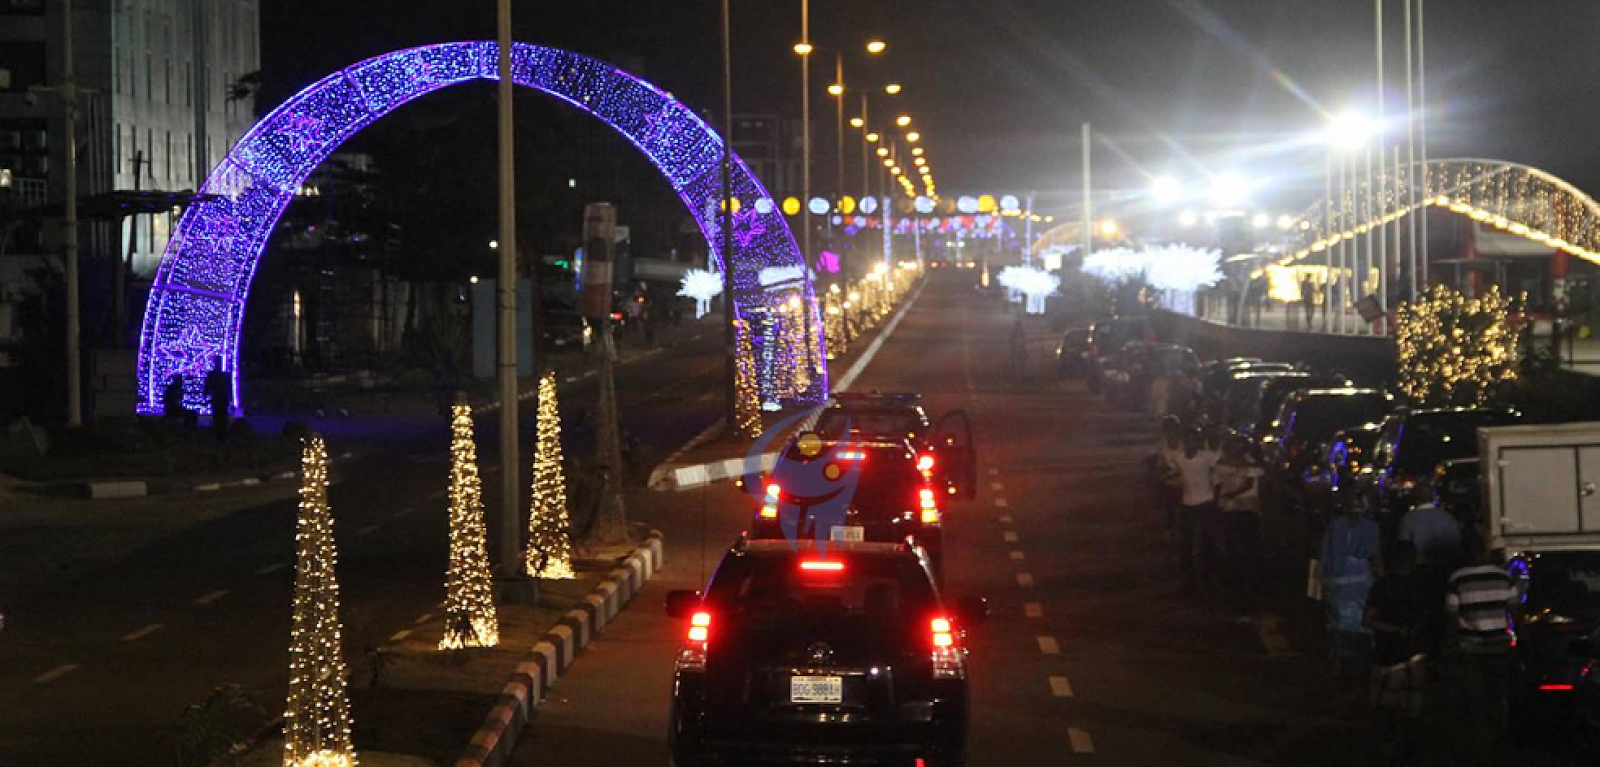 Bat Bus 12 >> In Pictures: Fashola Beautifies Eko Atlantic City Lagos Ahead Of 2015, New Year ...